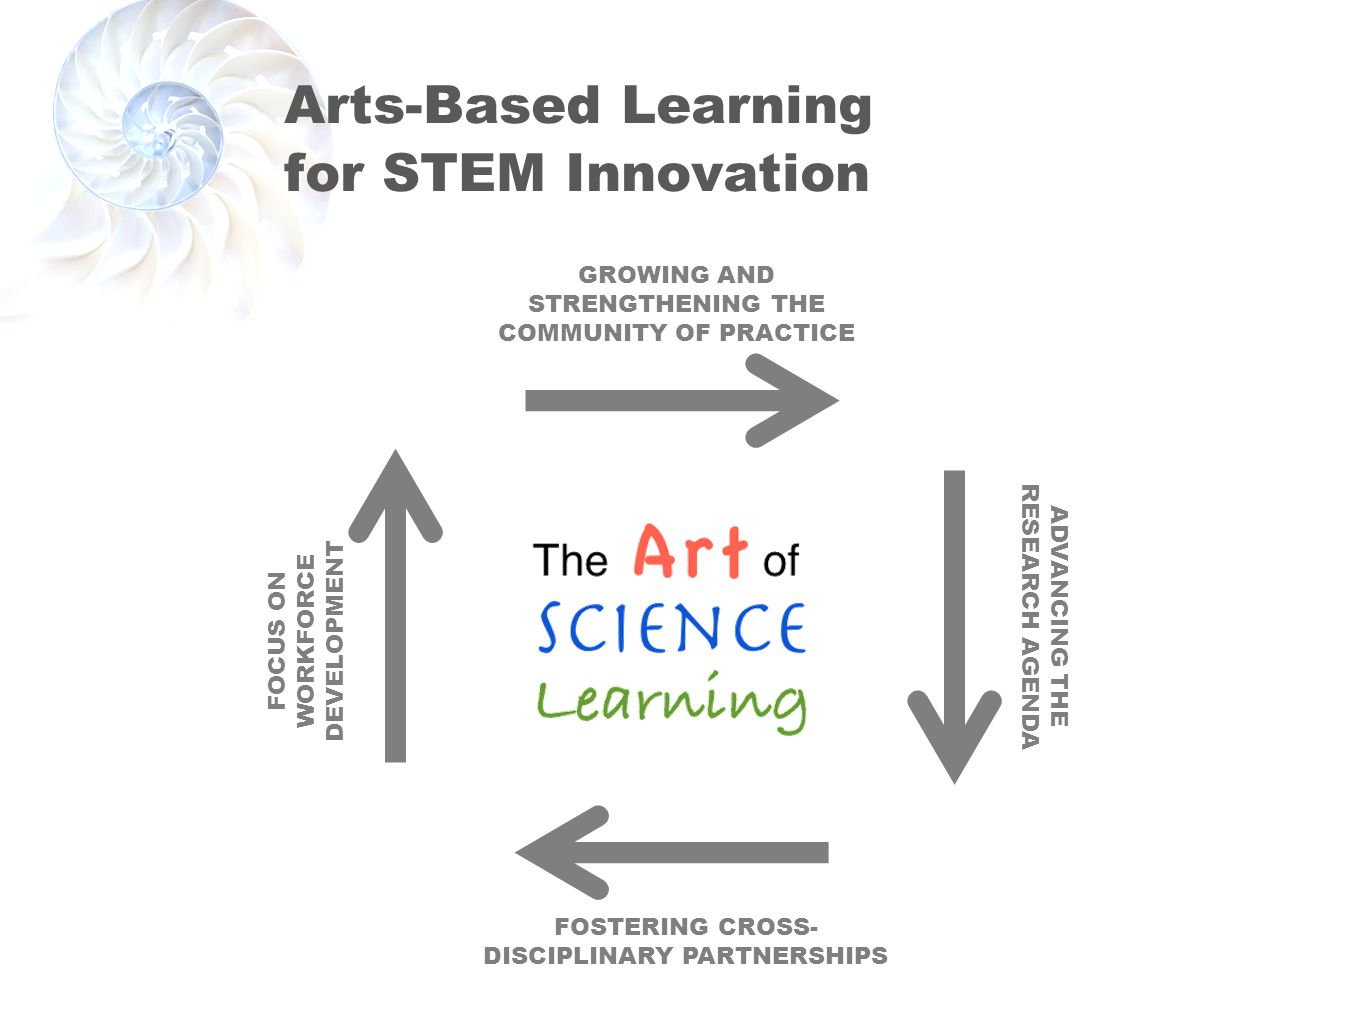 Arts-Based Learning for STEM Innovation FOSTERING CROSS- DISCIPLINARY PARTNERSHIPS FOCUS ON WORKFORCE DEVELOPMENT GROWING AND STRENGTHENING THE COMMUN